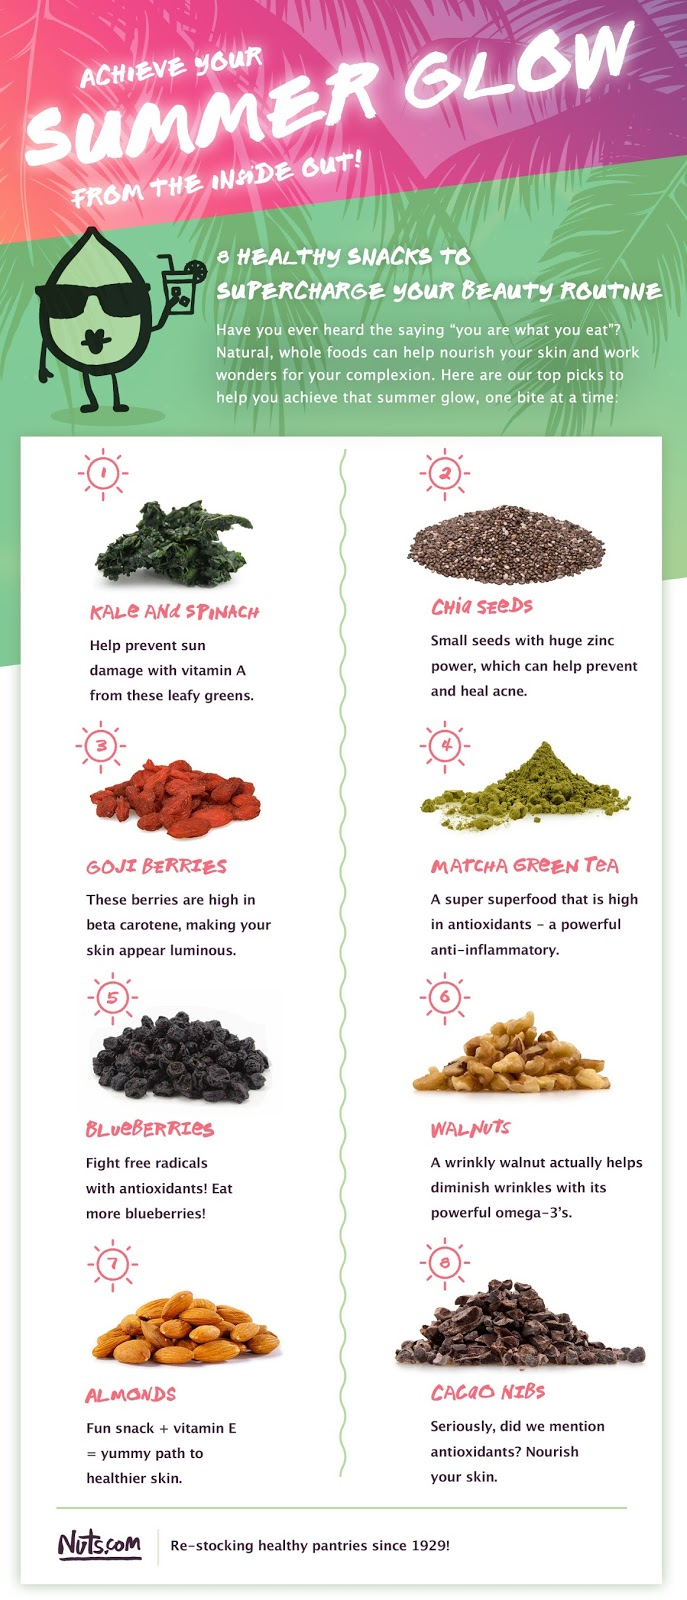 Superfoods Health Benefits Nuts.com - Andrea Tiffany A Glimpse of Glam